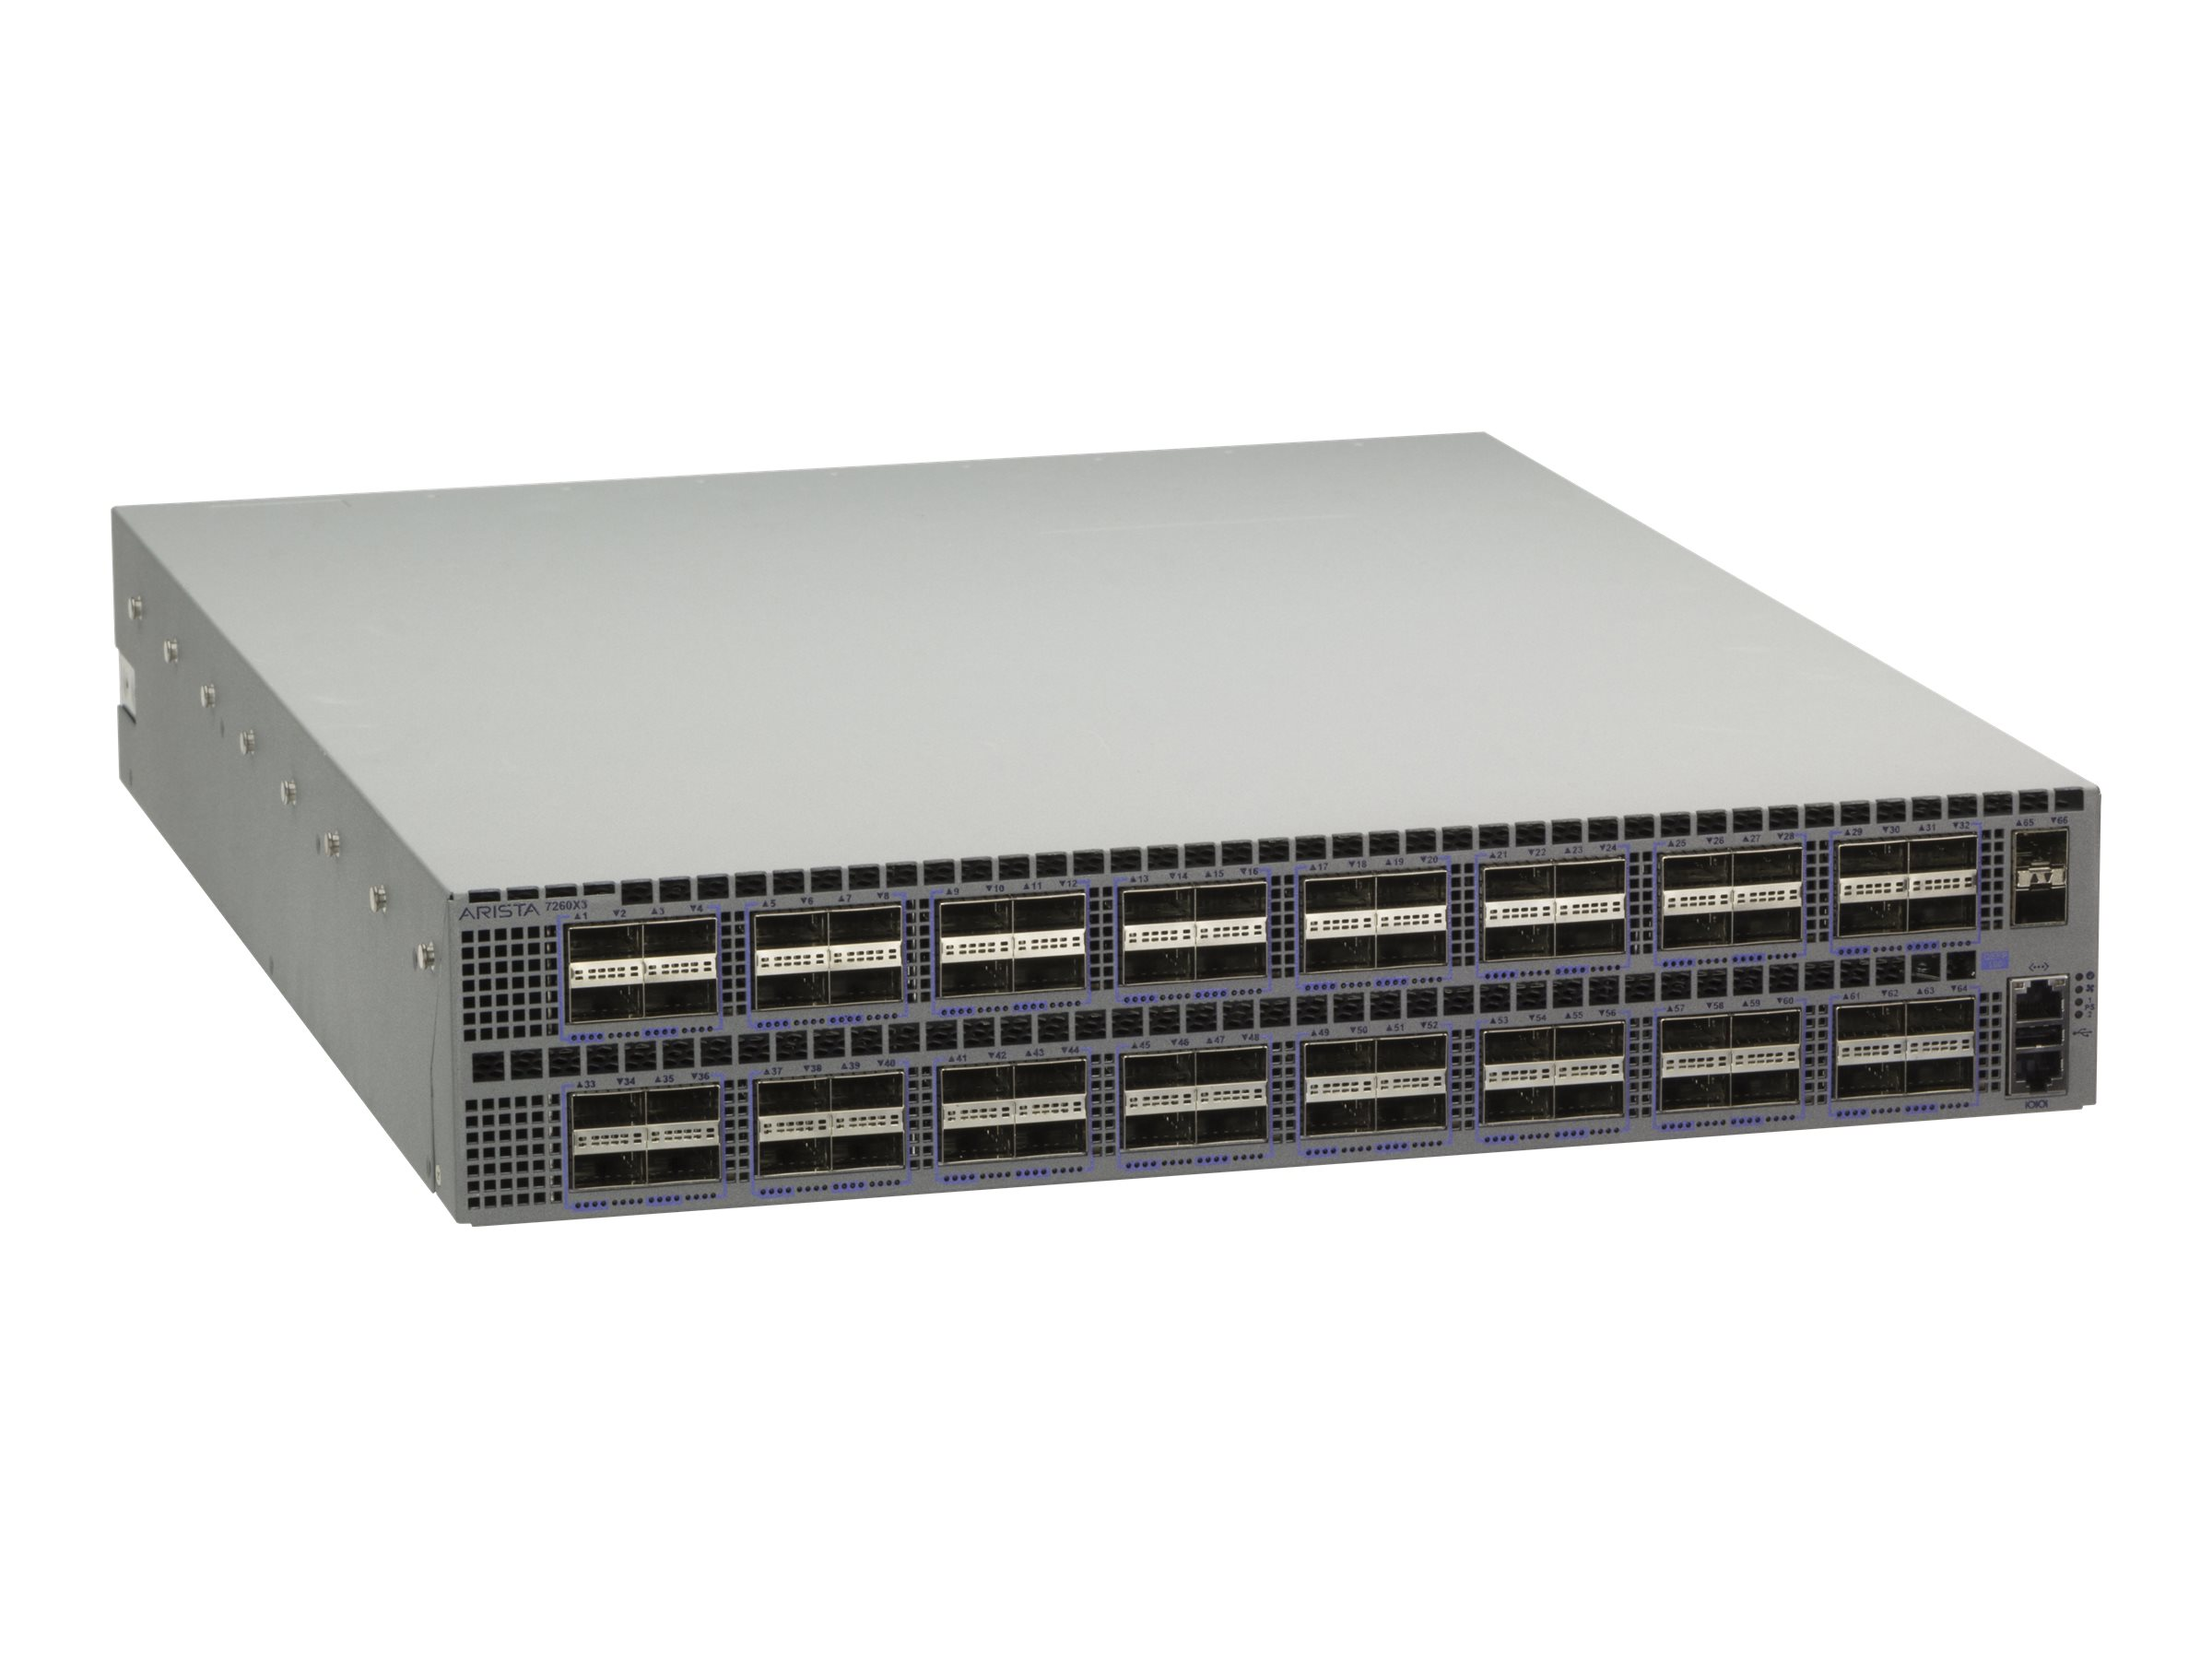 Arista 7250QX-64 - switch - 64 ports - managed - rack-mountable